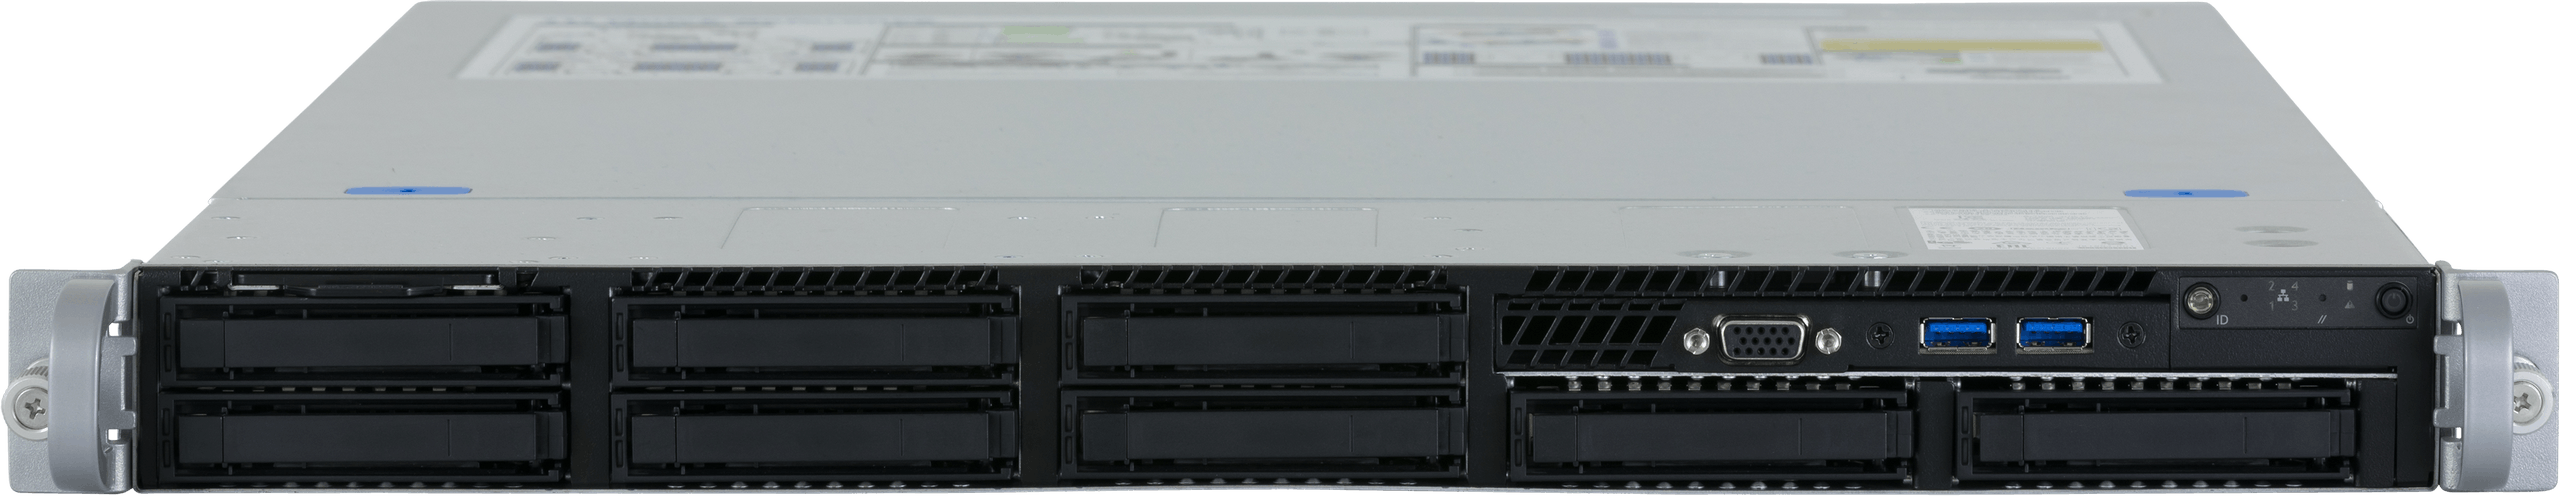 A front-facing view of the Jackal Pro 1U server, featuring VGA out and USB-A 3.0 ports.